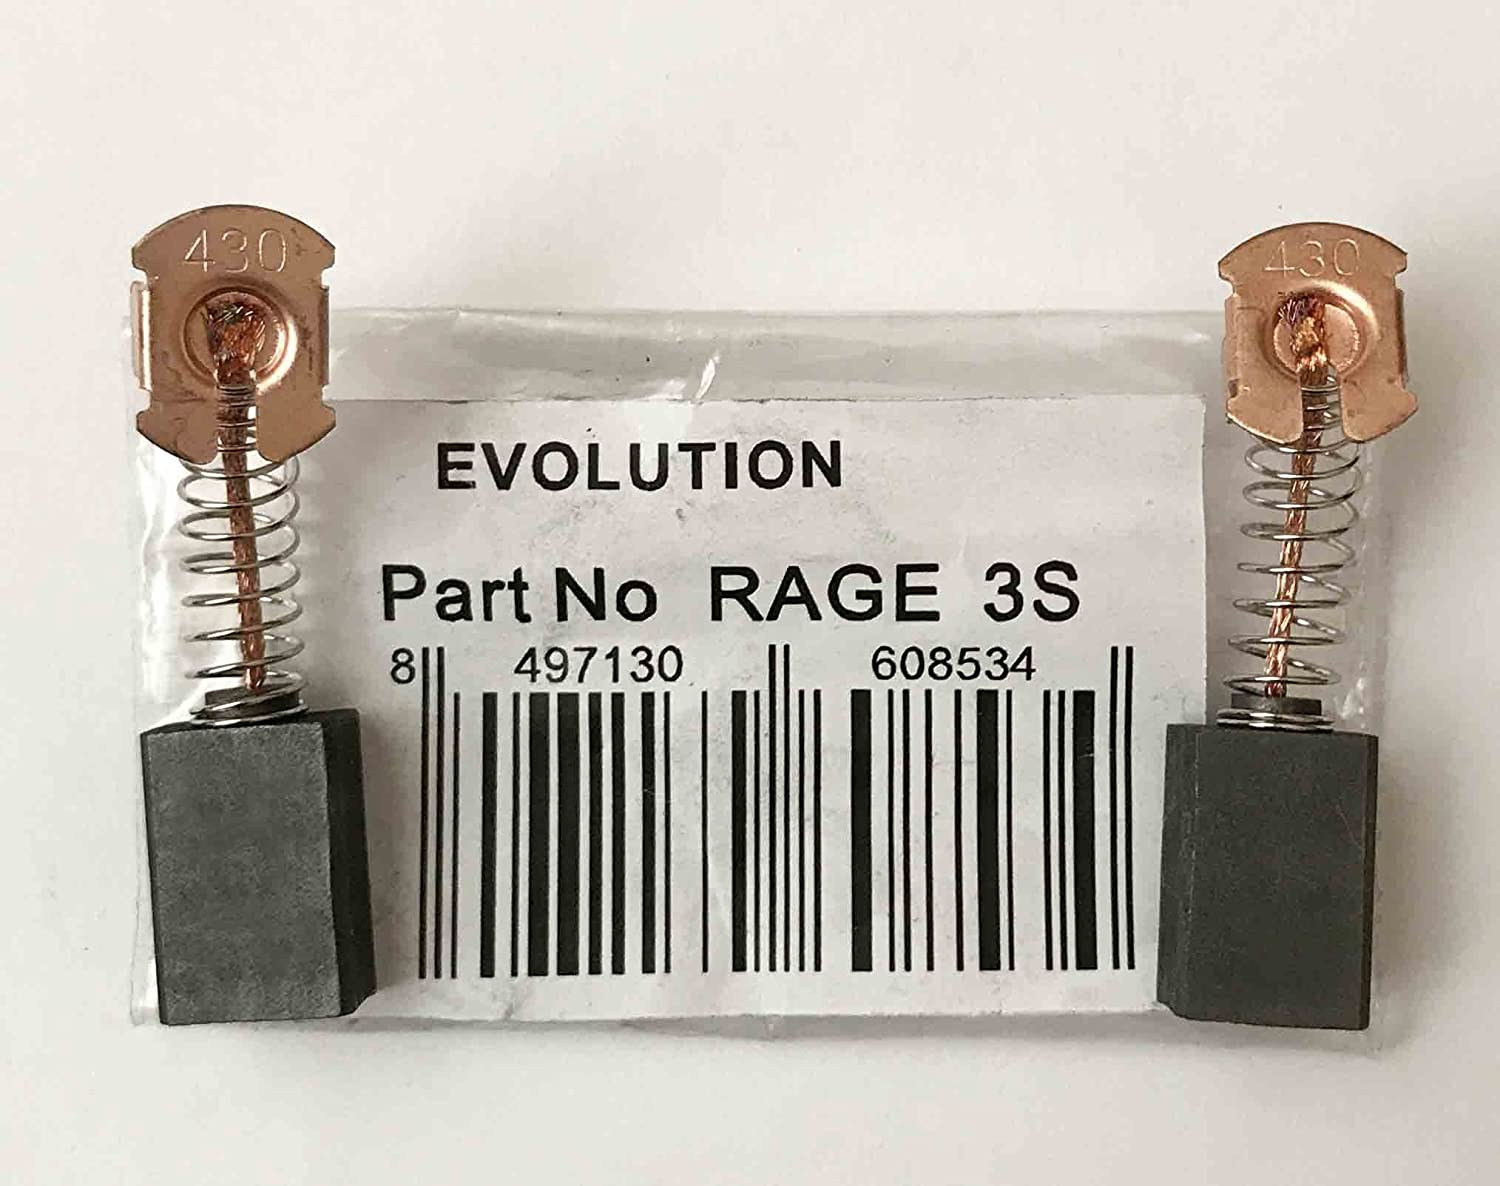 OTOTEC Replacement Part Power Tool Carbon Brushes For Evolution Rage 3 Electric Drill Motor